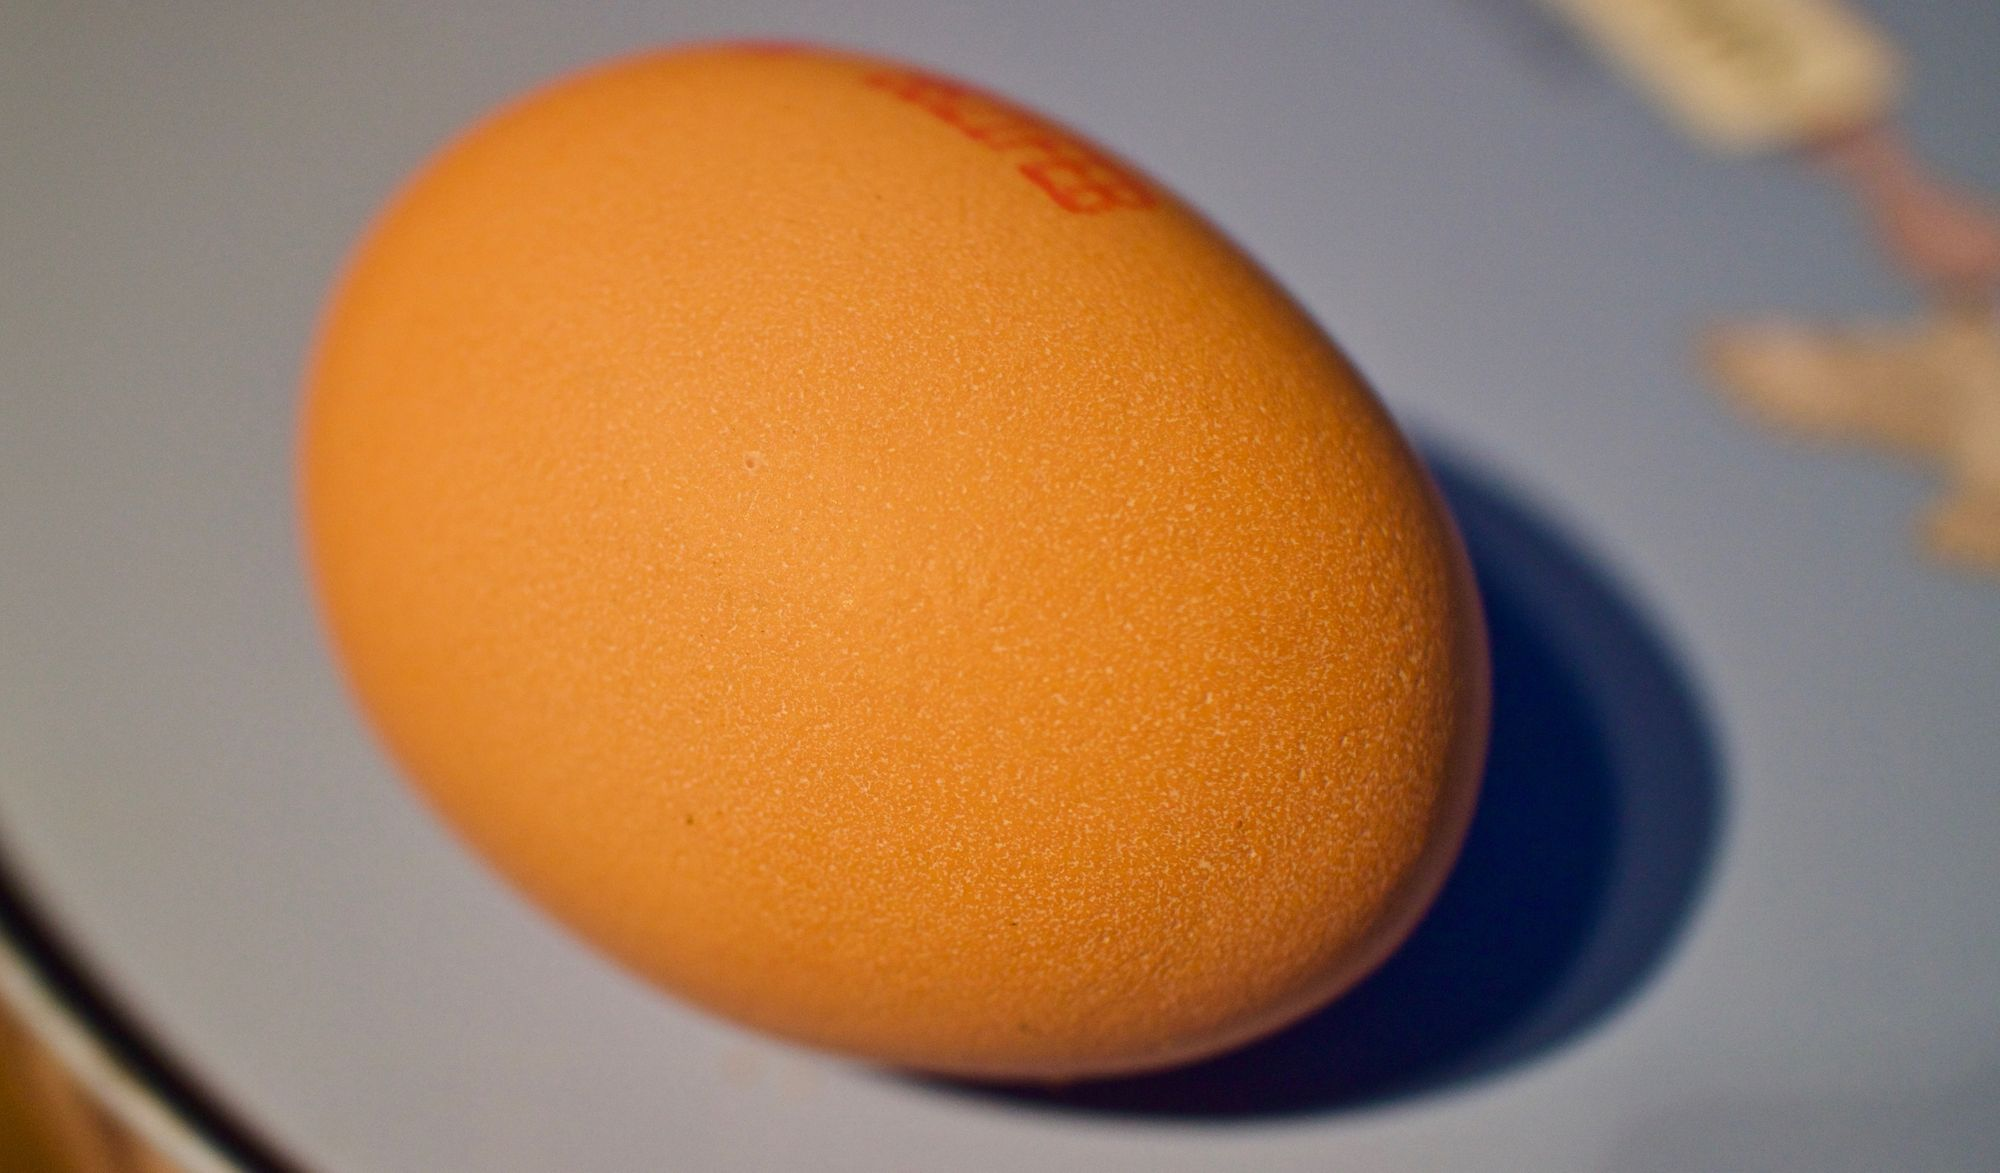 The World Record Egg: hacking attention for mental health?